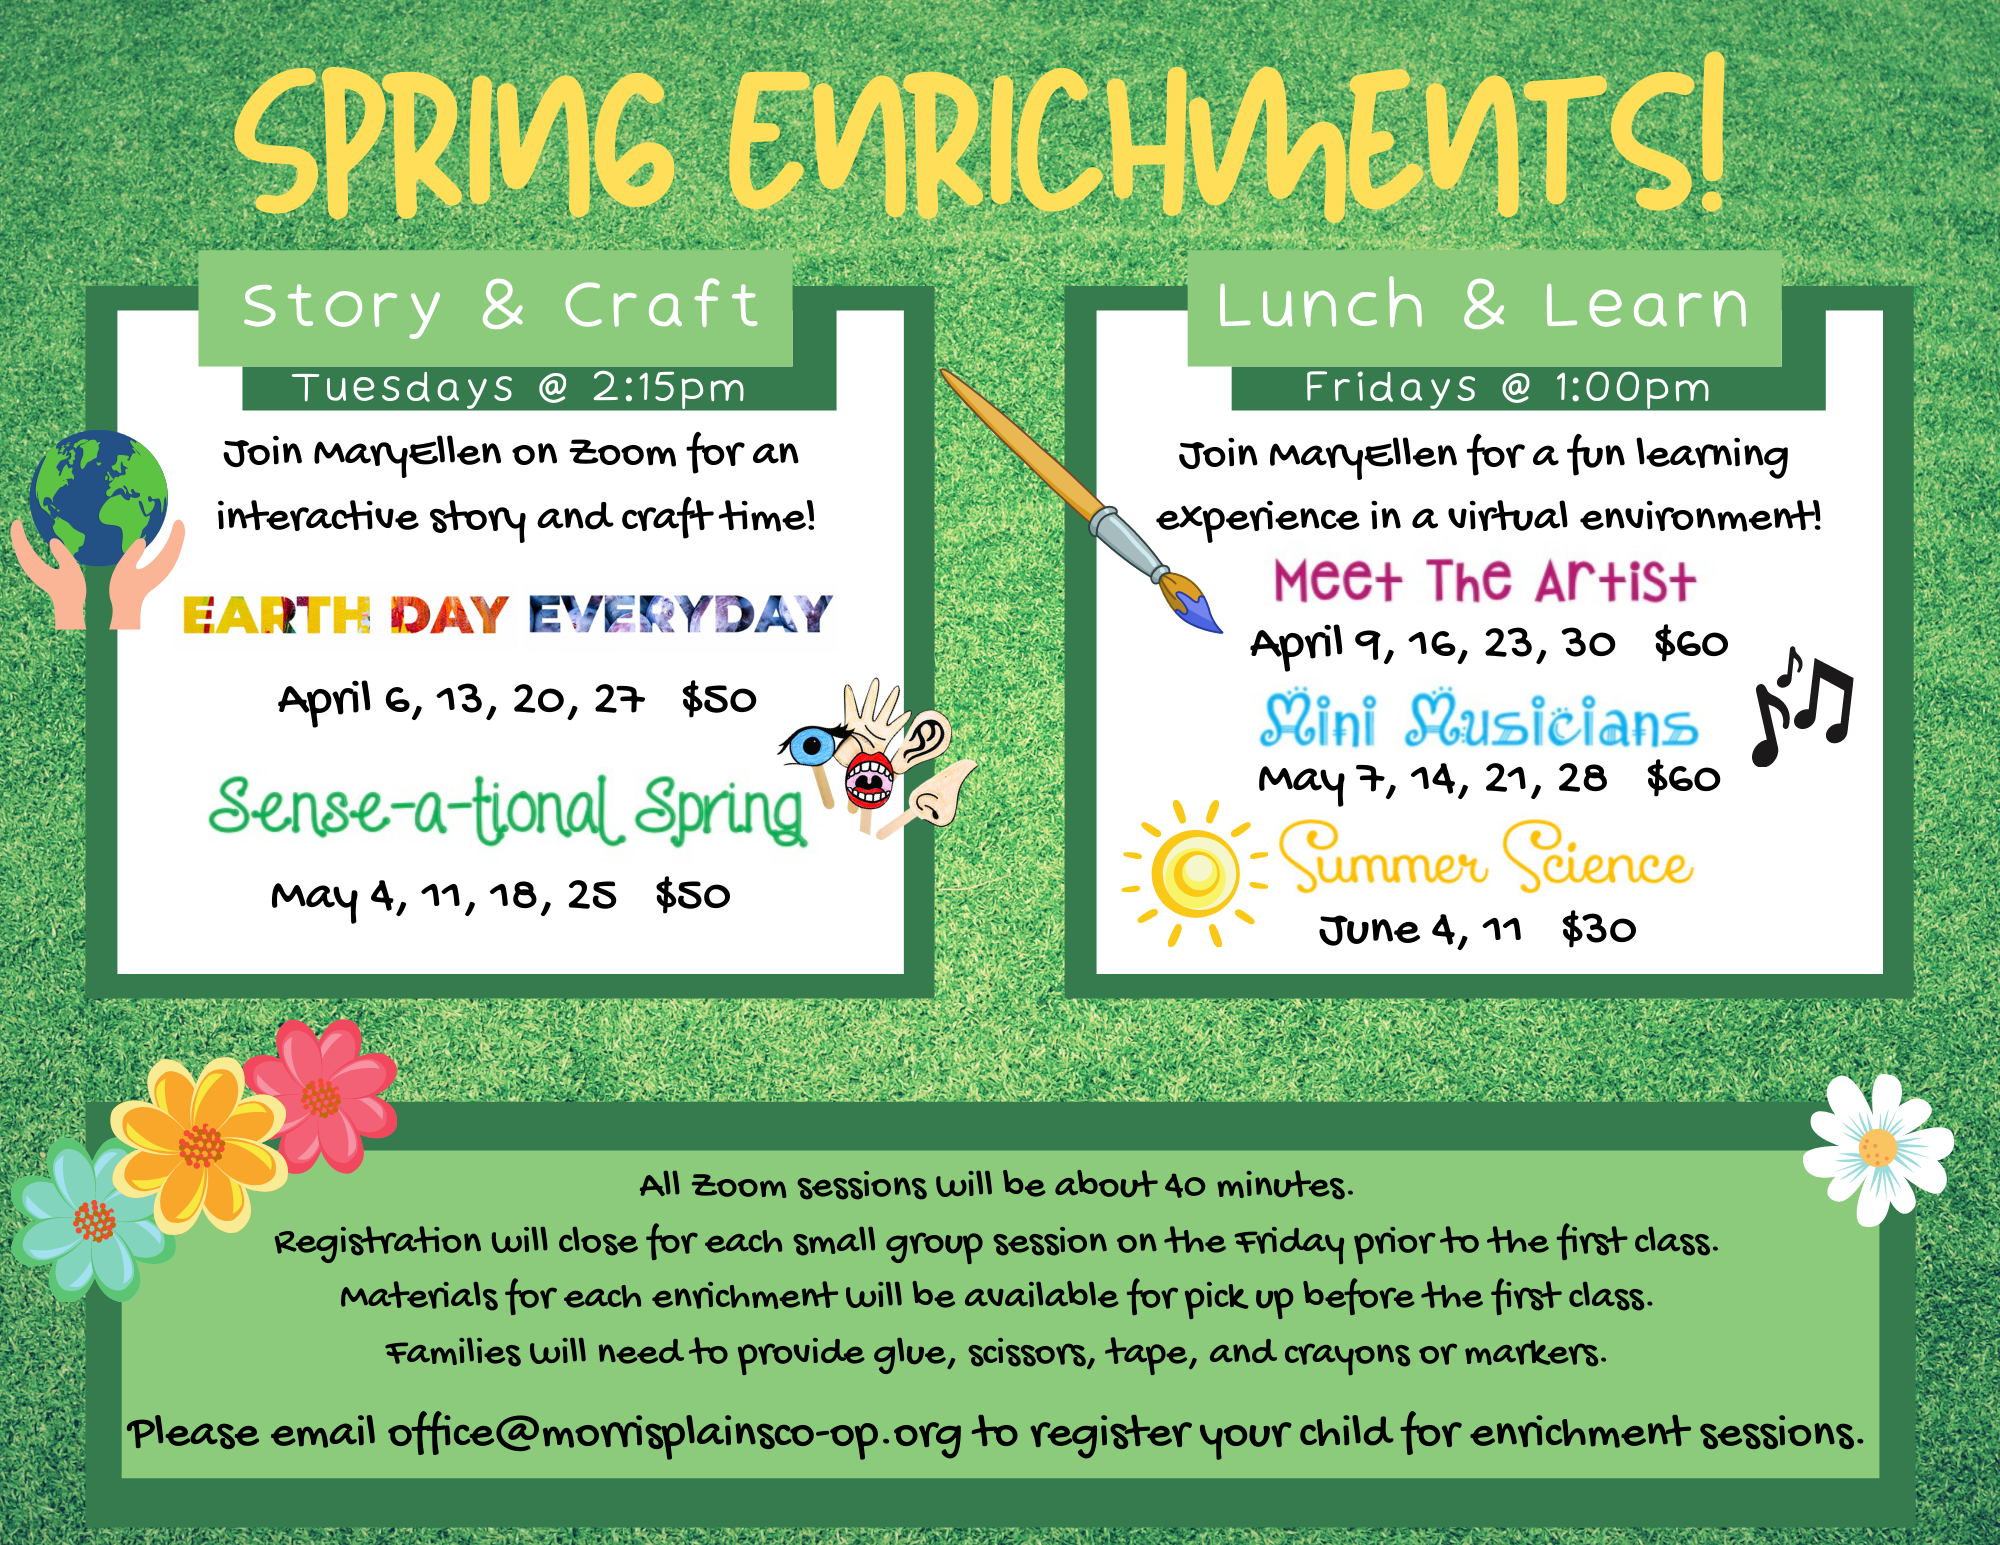 Spring Enrichments